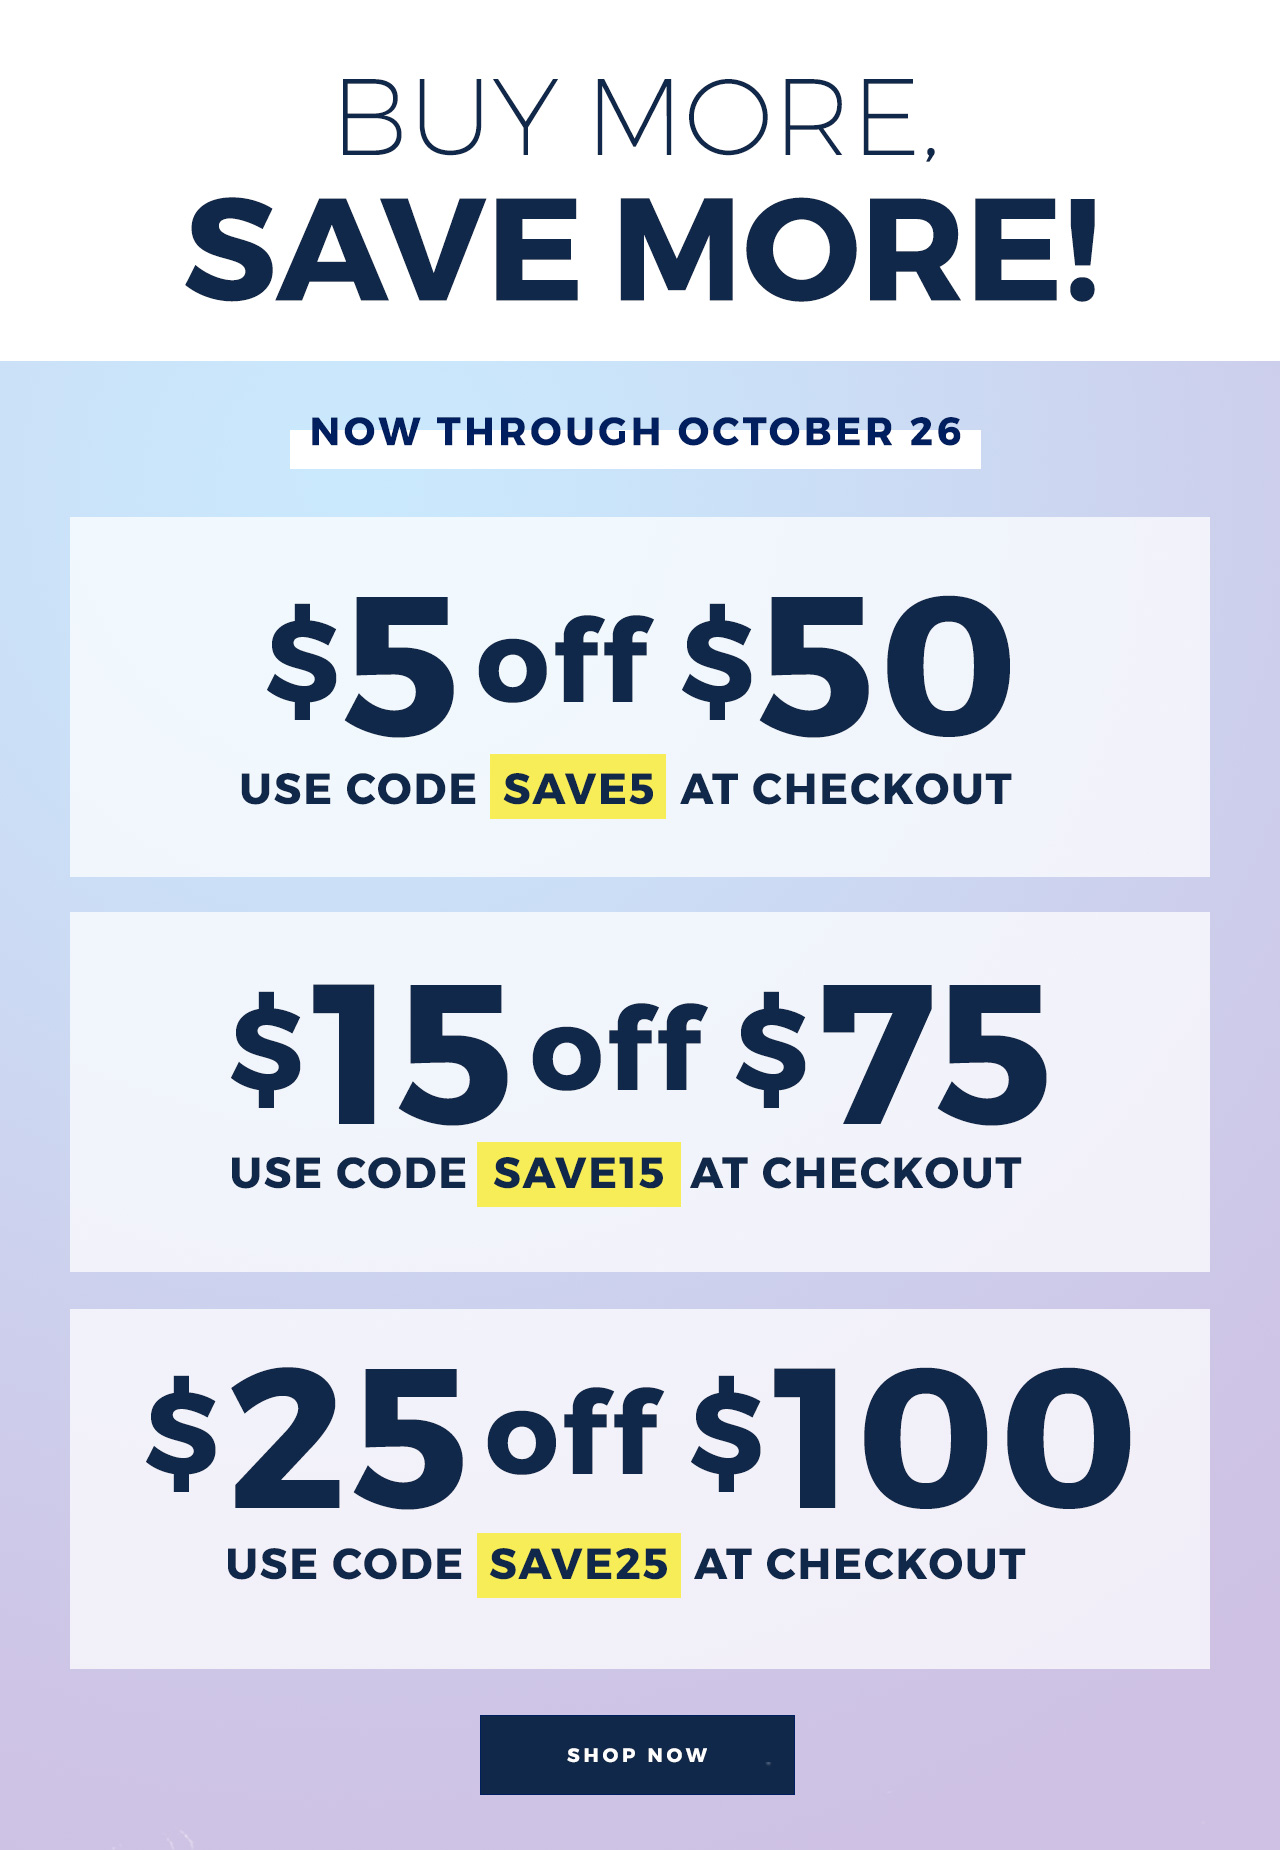 Buy More, Save More! Now through October 26th save $5 off $50, $15 off $75, $25 off $100